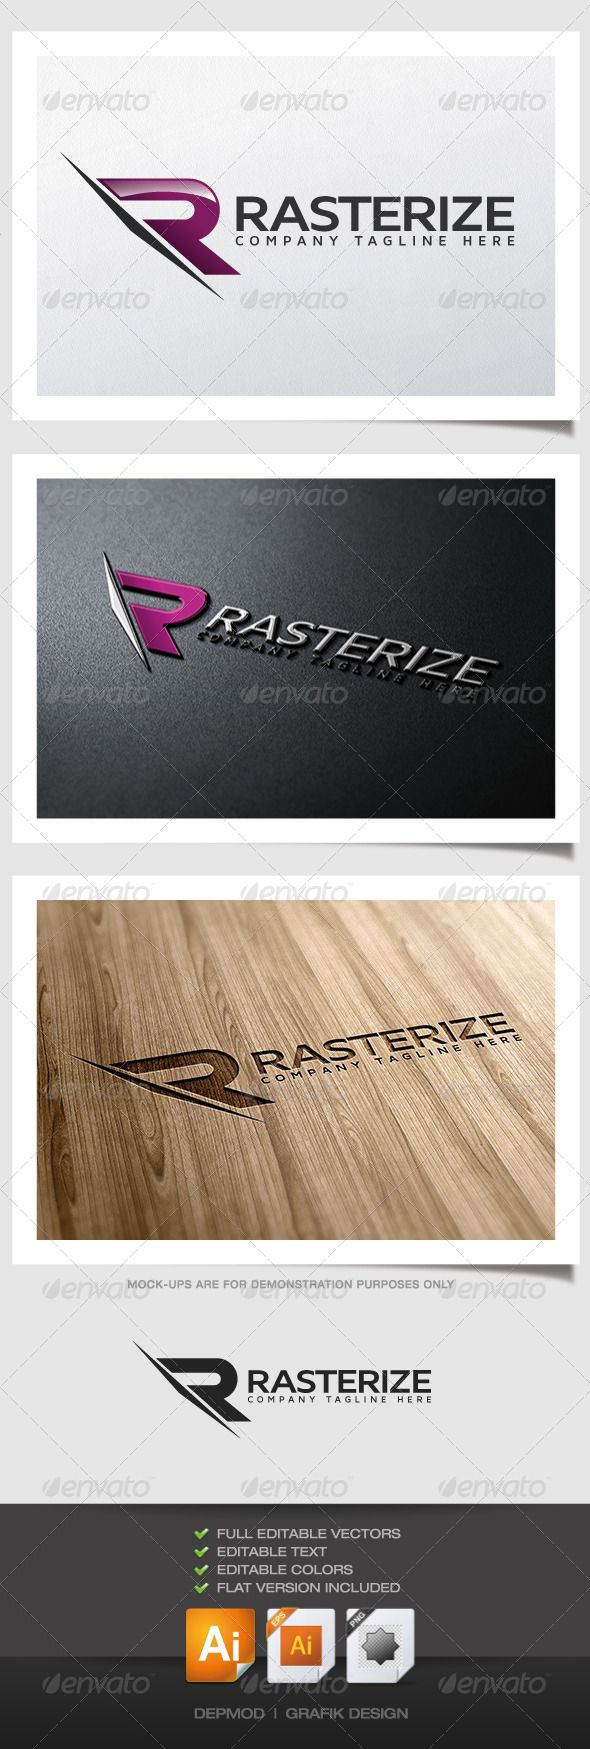 Rasterize Logo Logo of a stylized dynamic R letter. Can be used for many kind of project. Full vectors, this logo can be easily resize and colors can be changed to fit your colors project. Flat version for print also included. The font used is in a download file in the package.